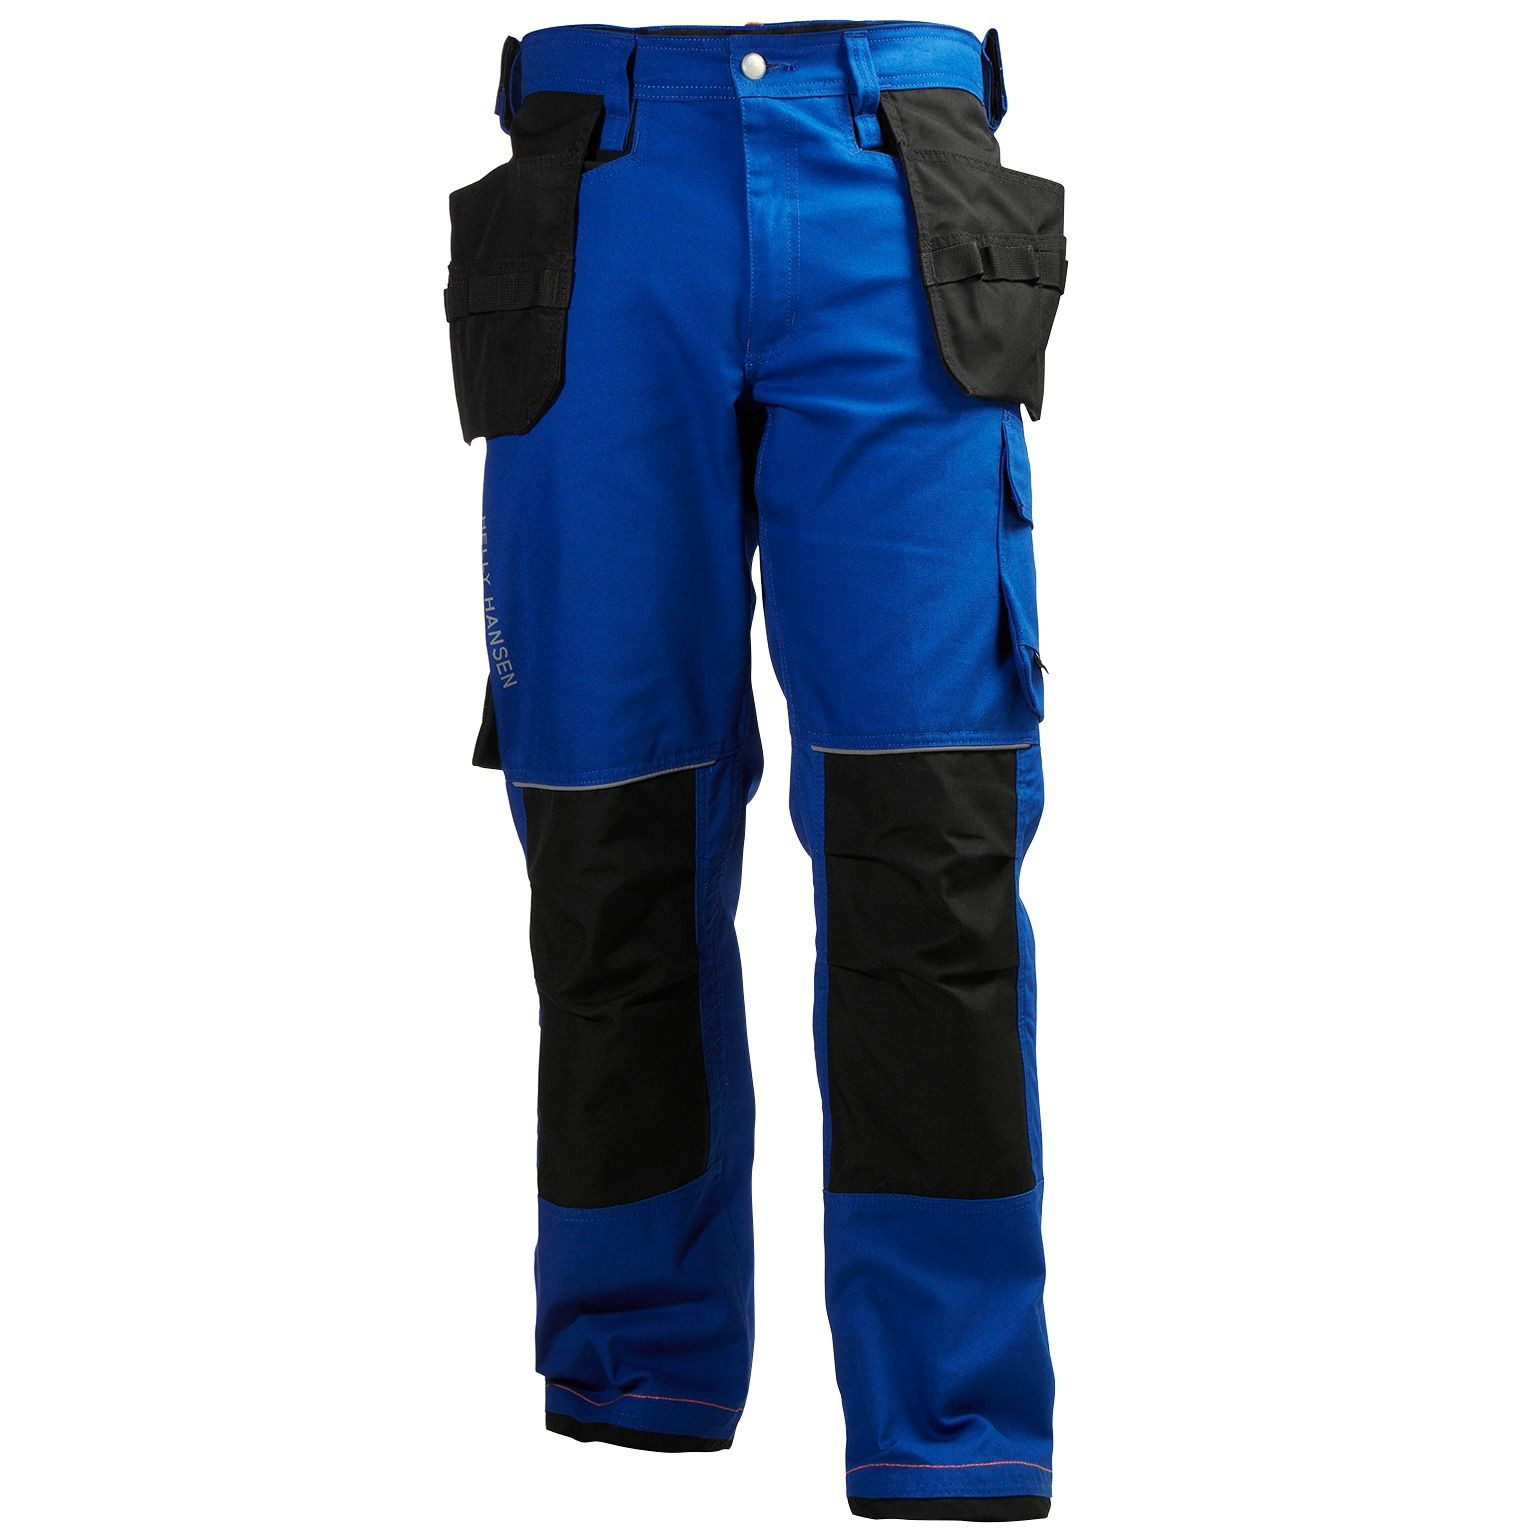 Pantalon de travail Chelsea Construction Helly Hansen - Bleu